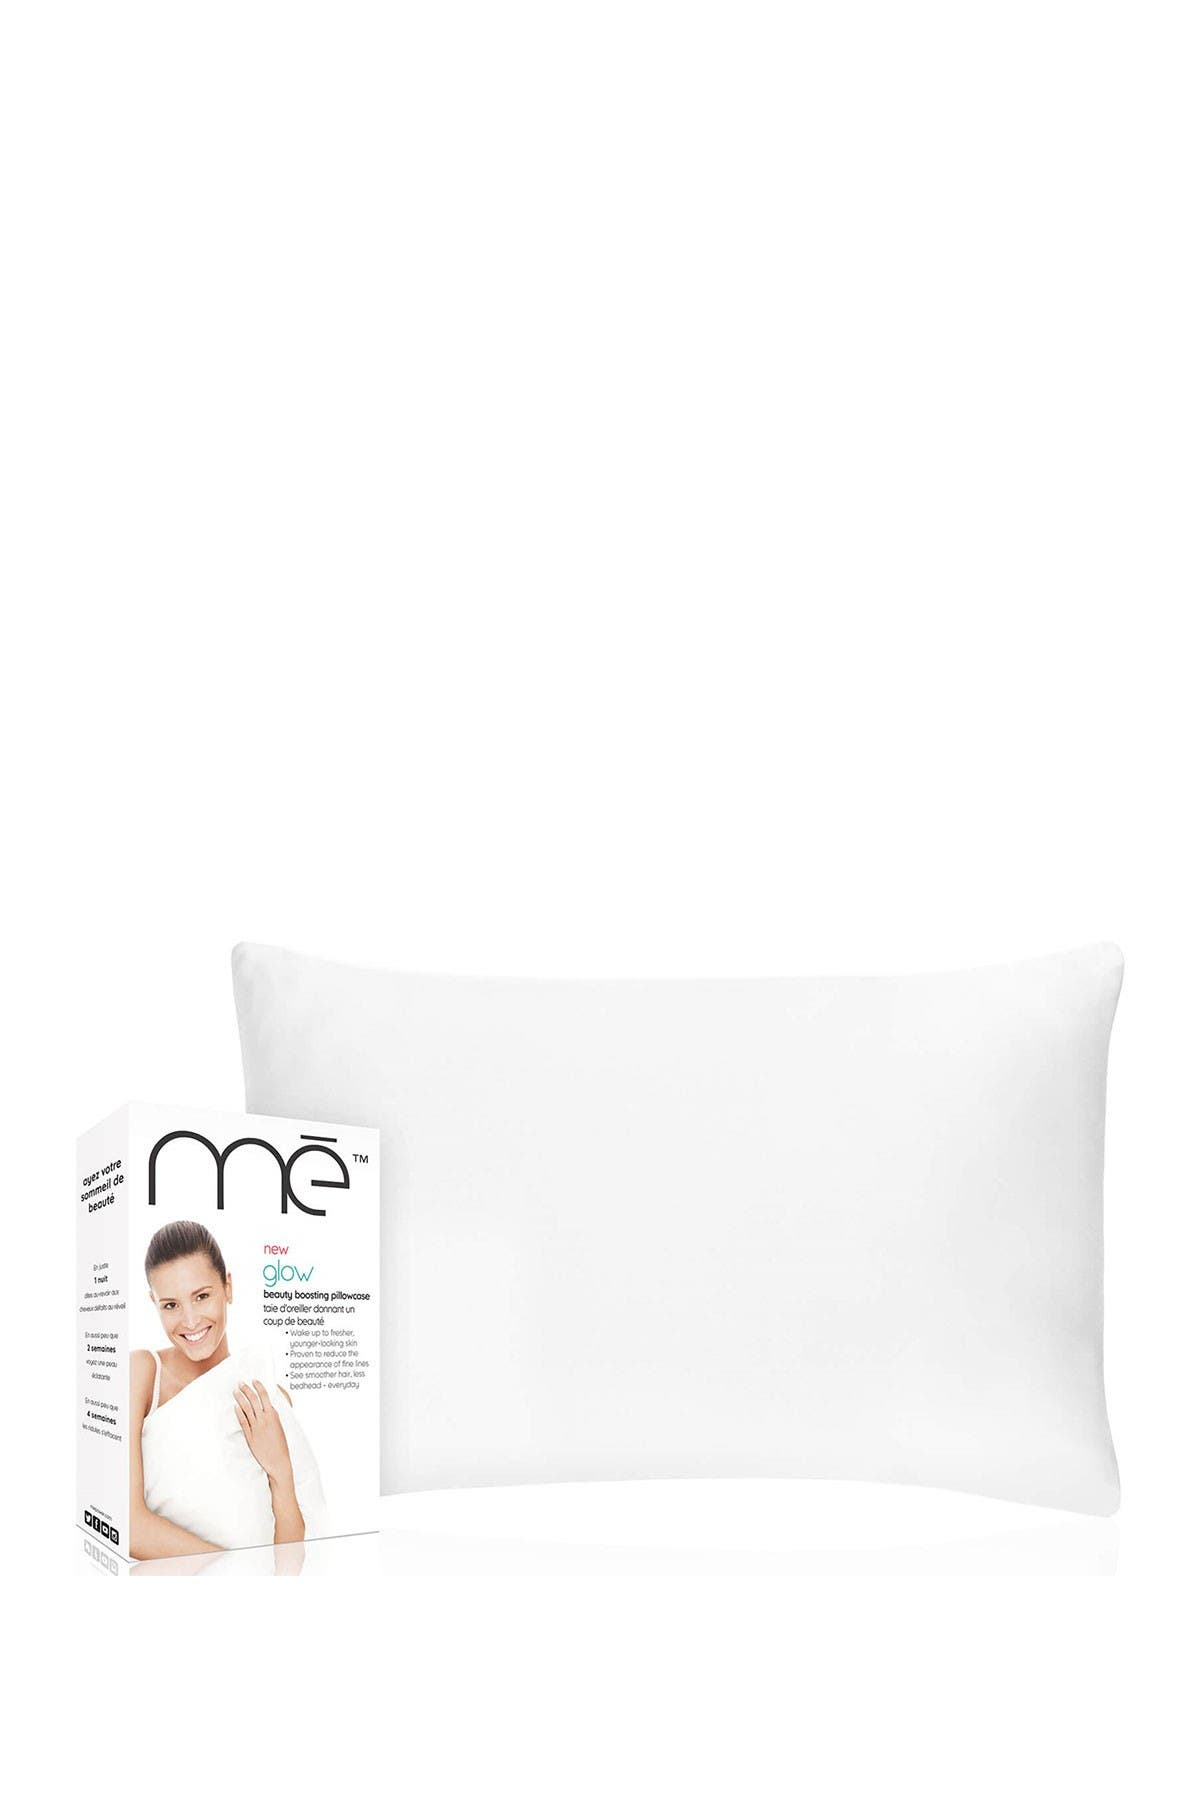 Me Glow Beauty Boosting Pillowcase - For Fine Lines Reduction w/ Anti-Aging Copper Technology